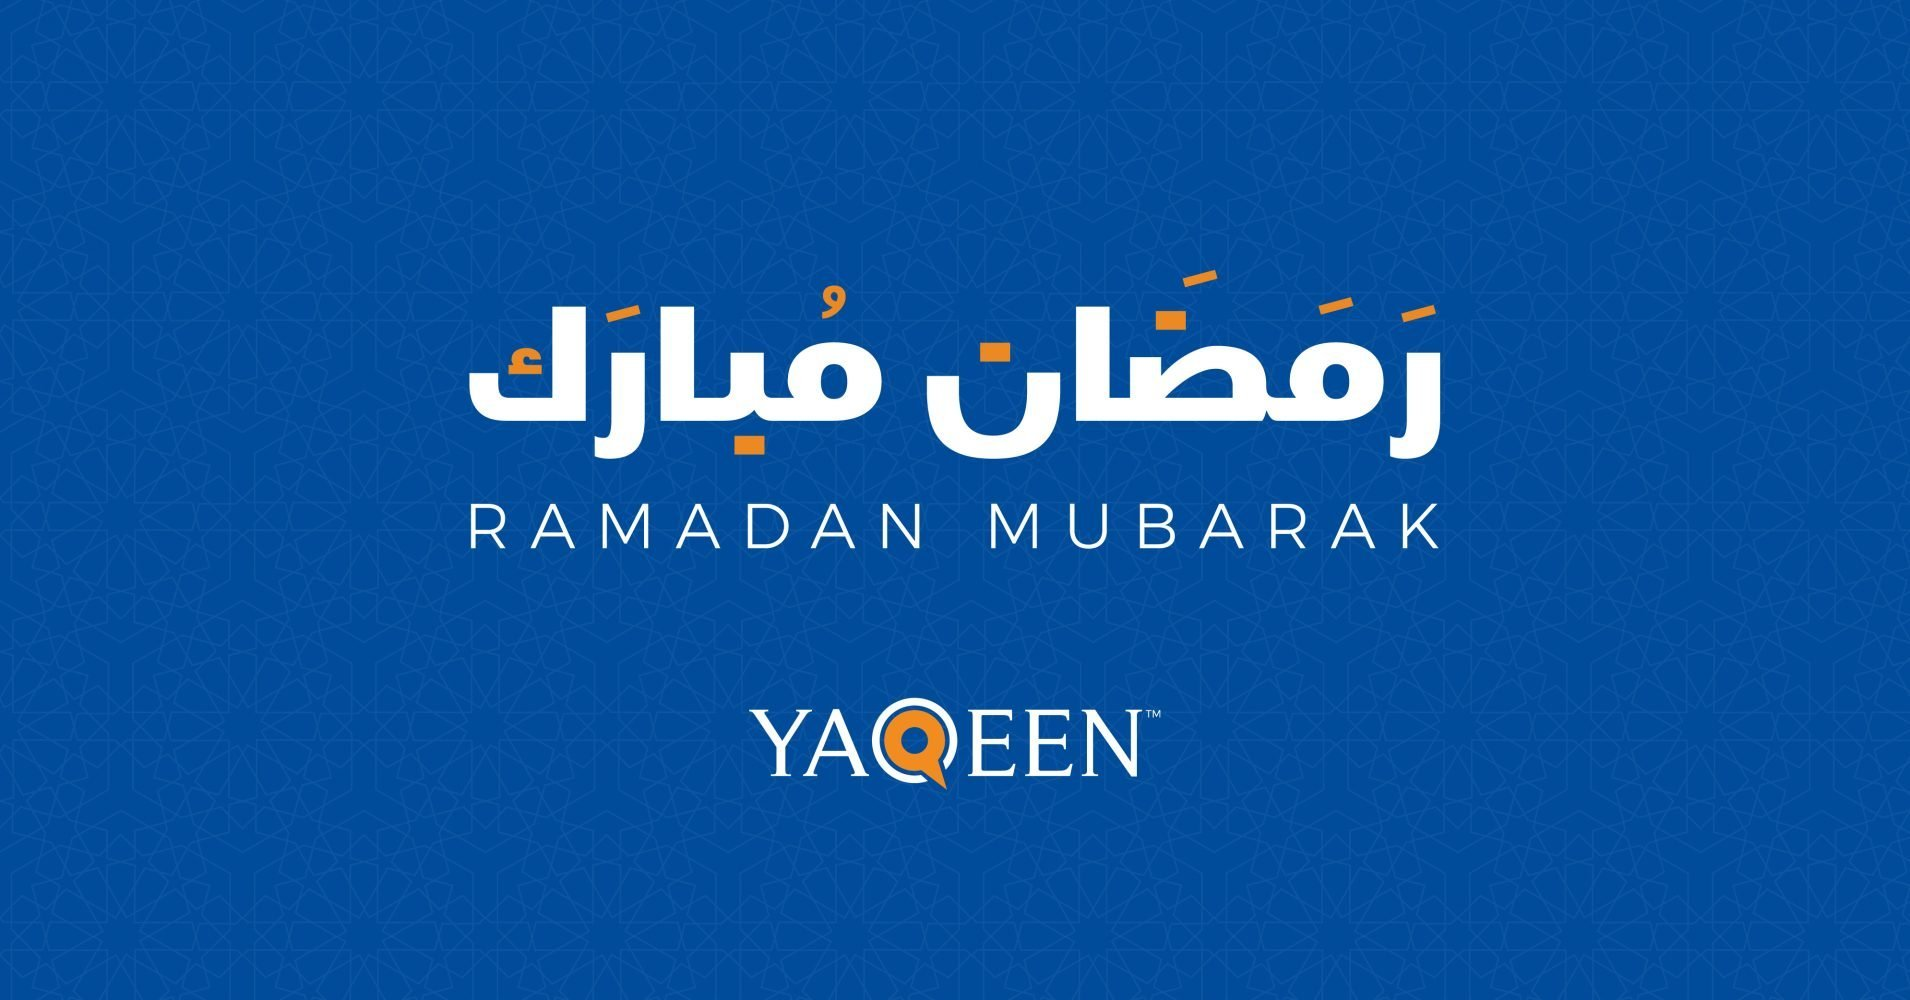 5 Ways to Enrich Your Ramadan with Yaqeen